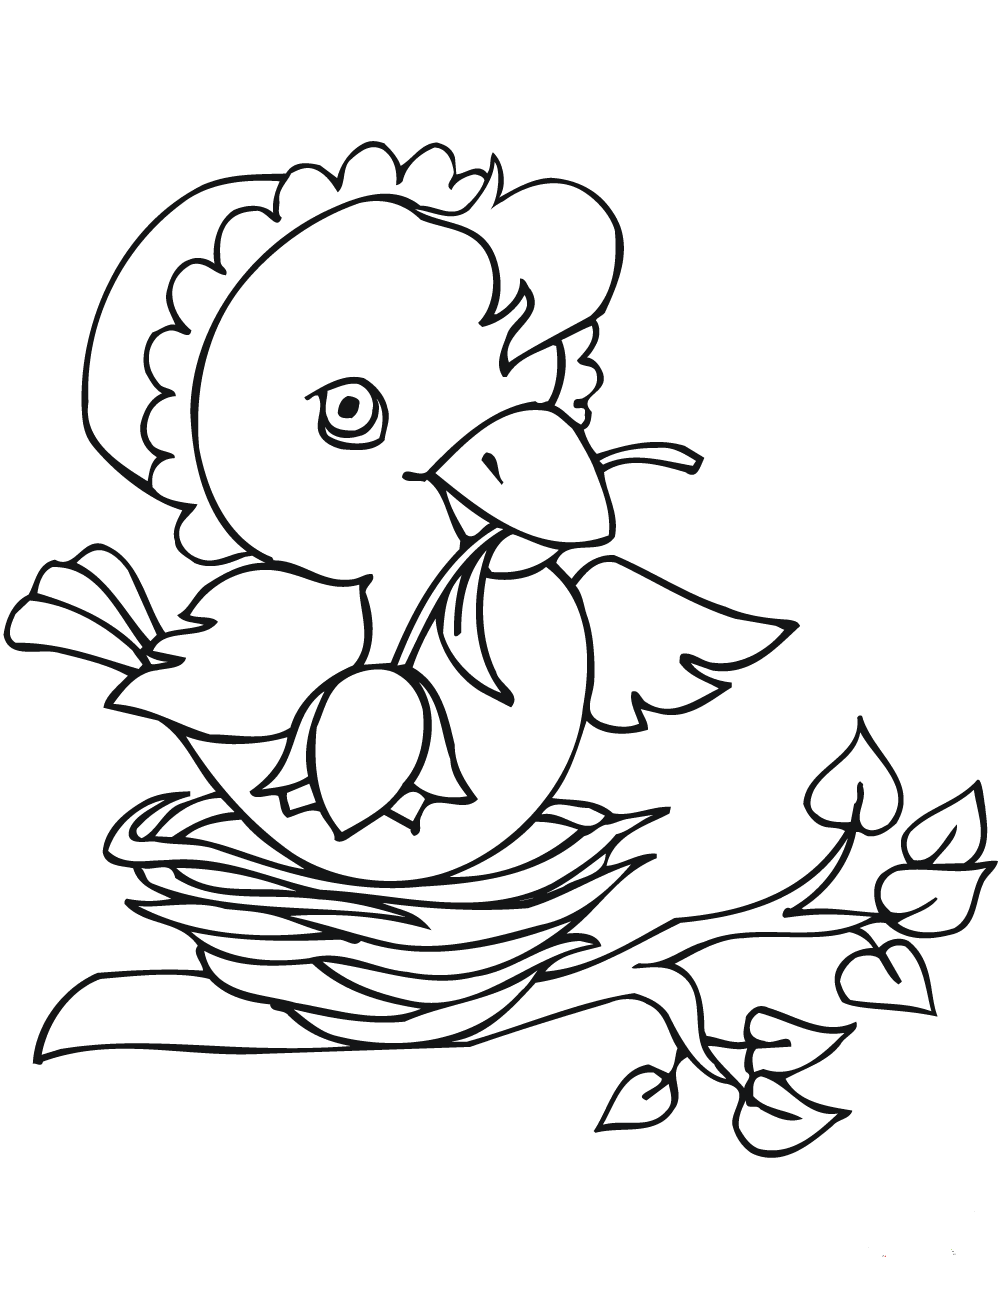 easter chick colouring cute easter chick coloring page easter template chick colouring easter